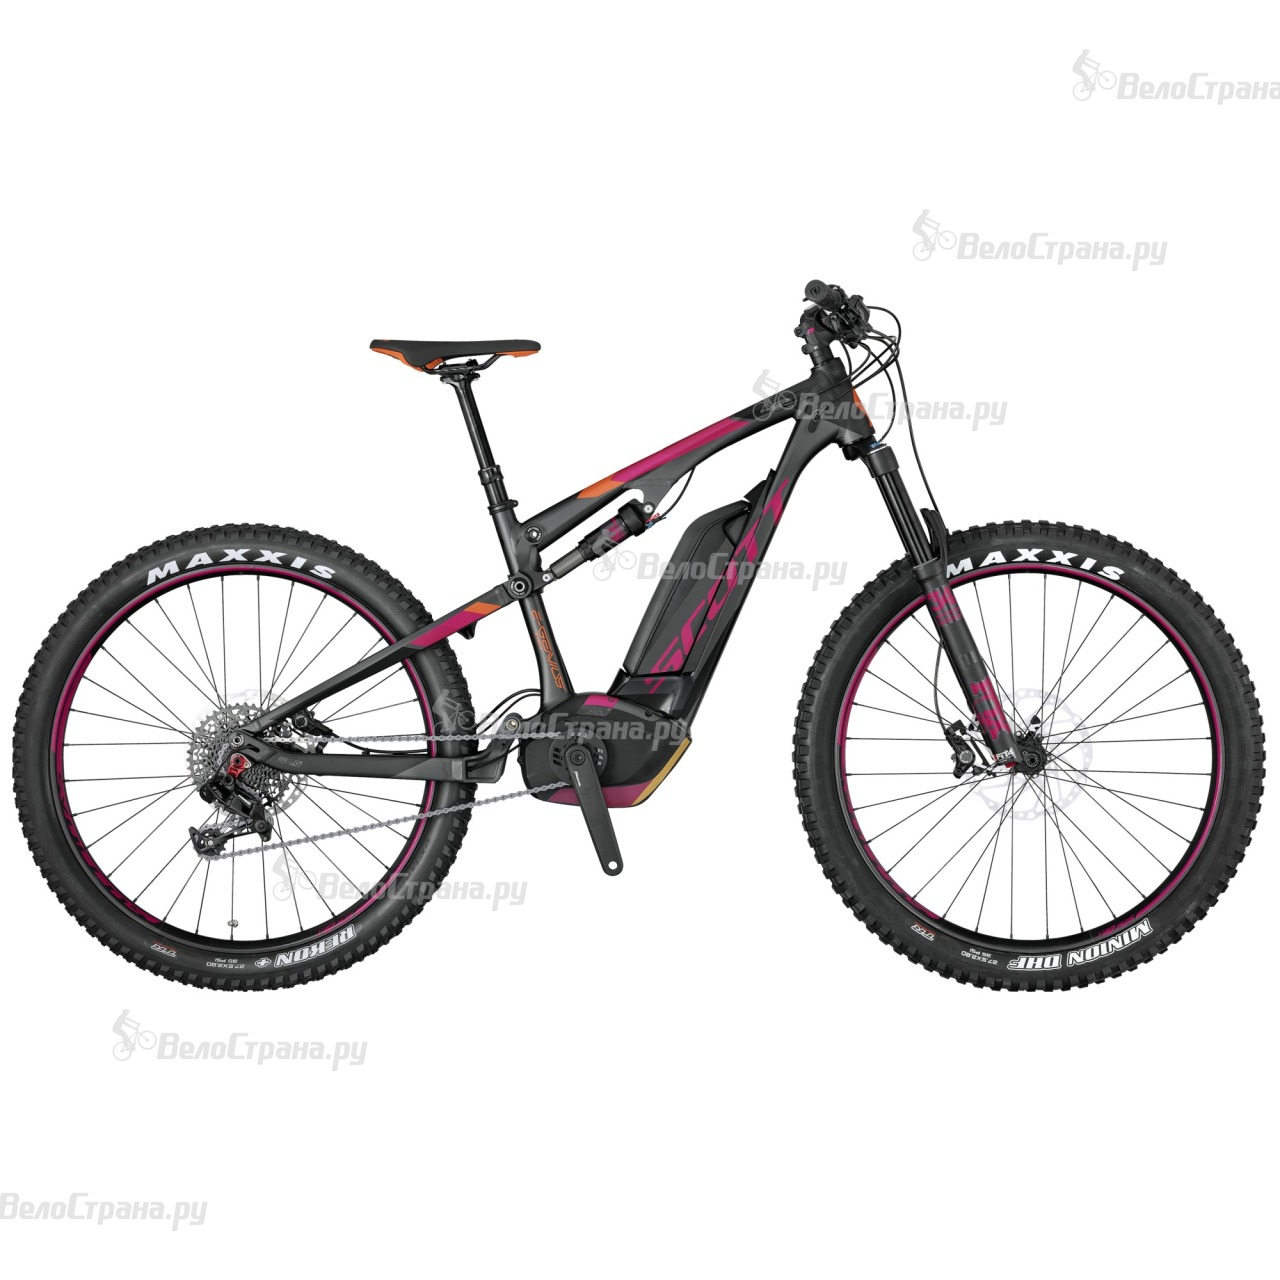 Велосипед Scott E-Contessa Genius 720 Plus (2017) велосипед scott contessa genius 700 2015